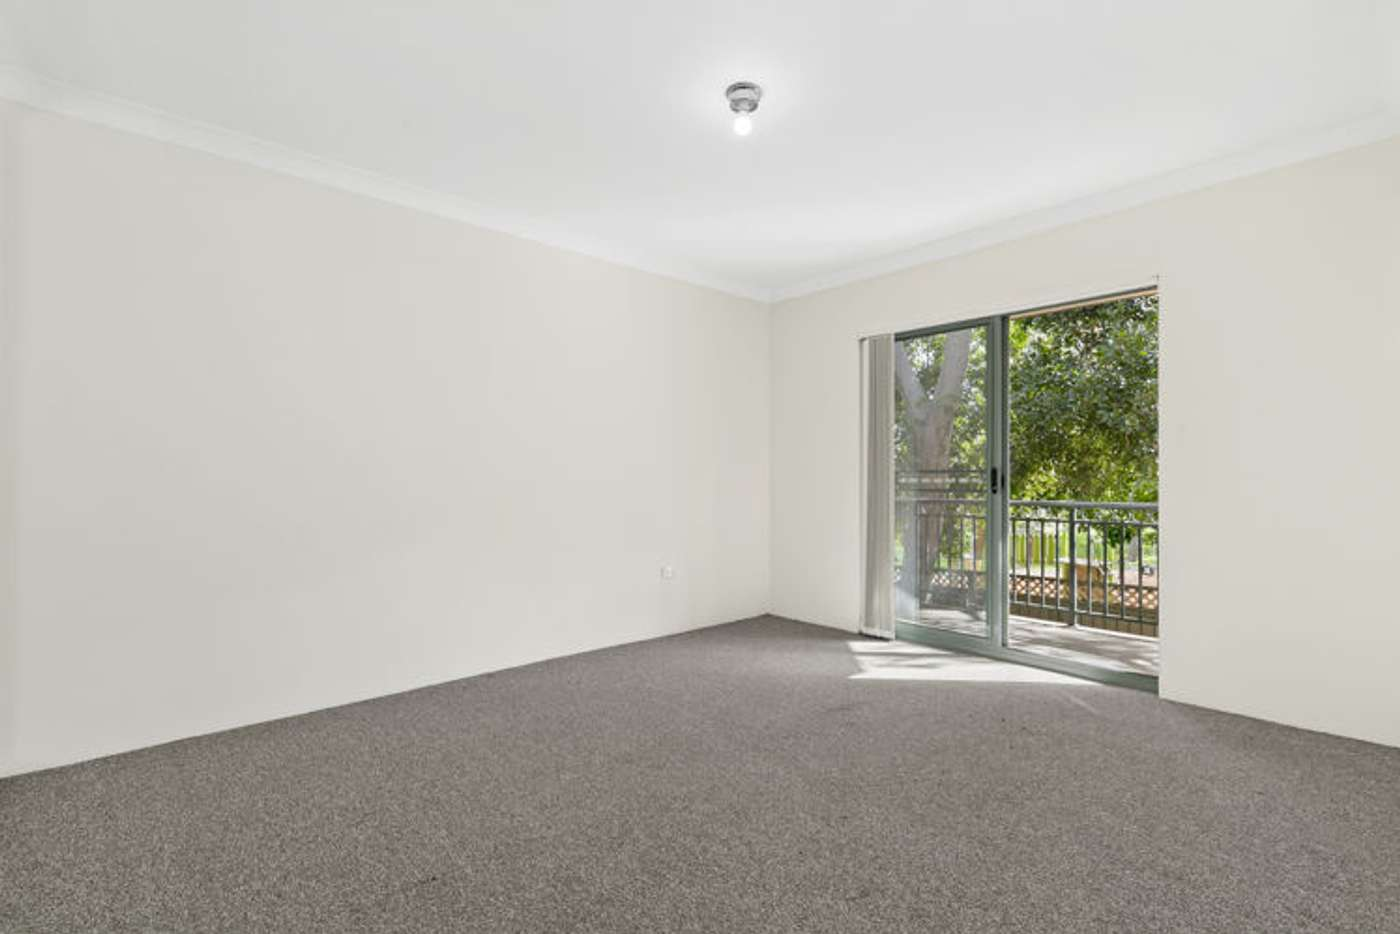 Fifth view of Homely unit listing, 3/33 Meehan Street, Granville NSW 2142